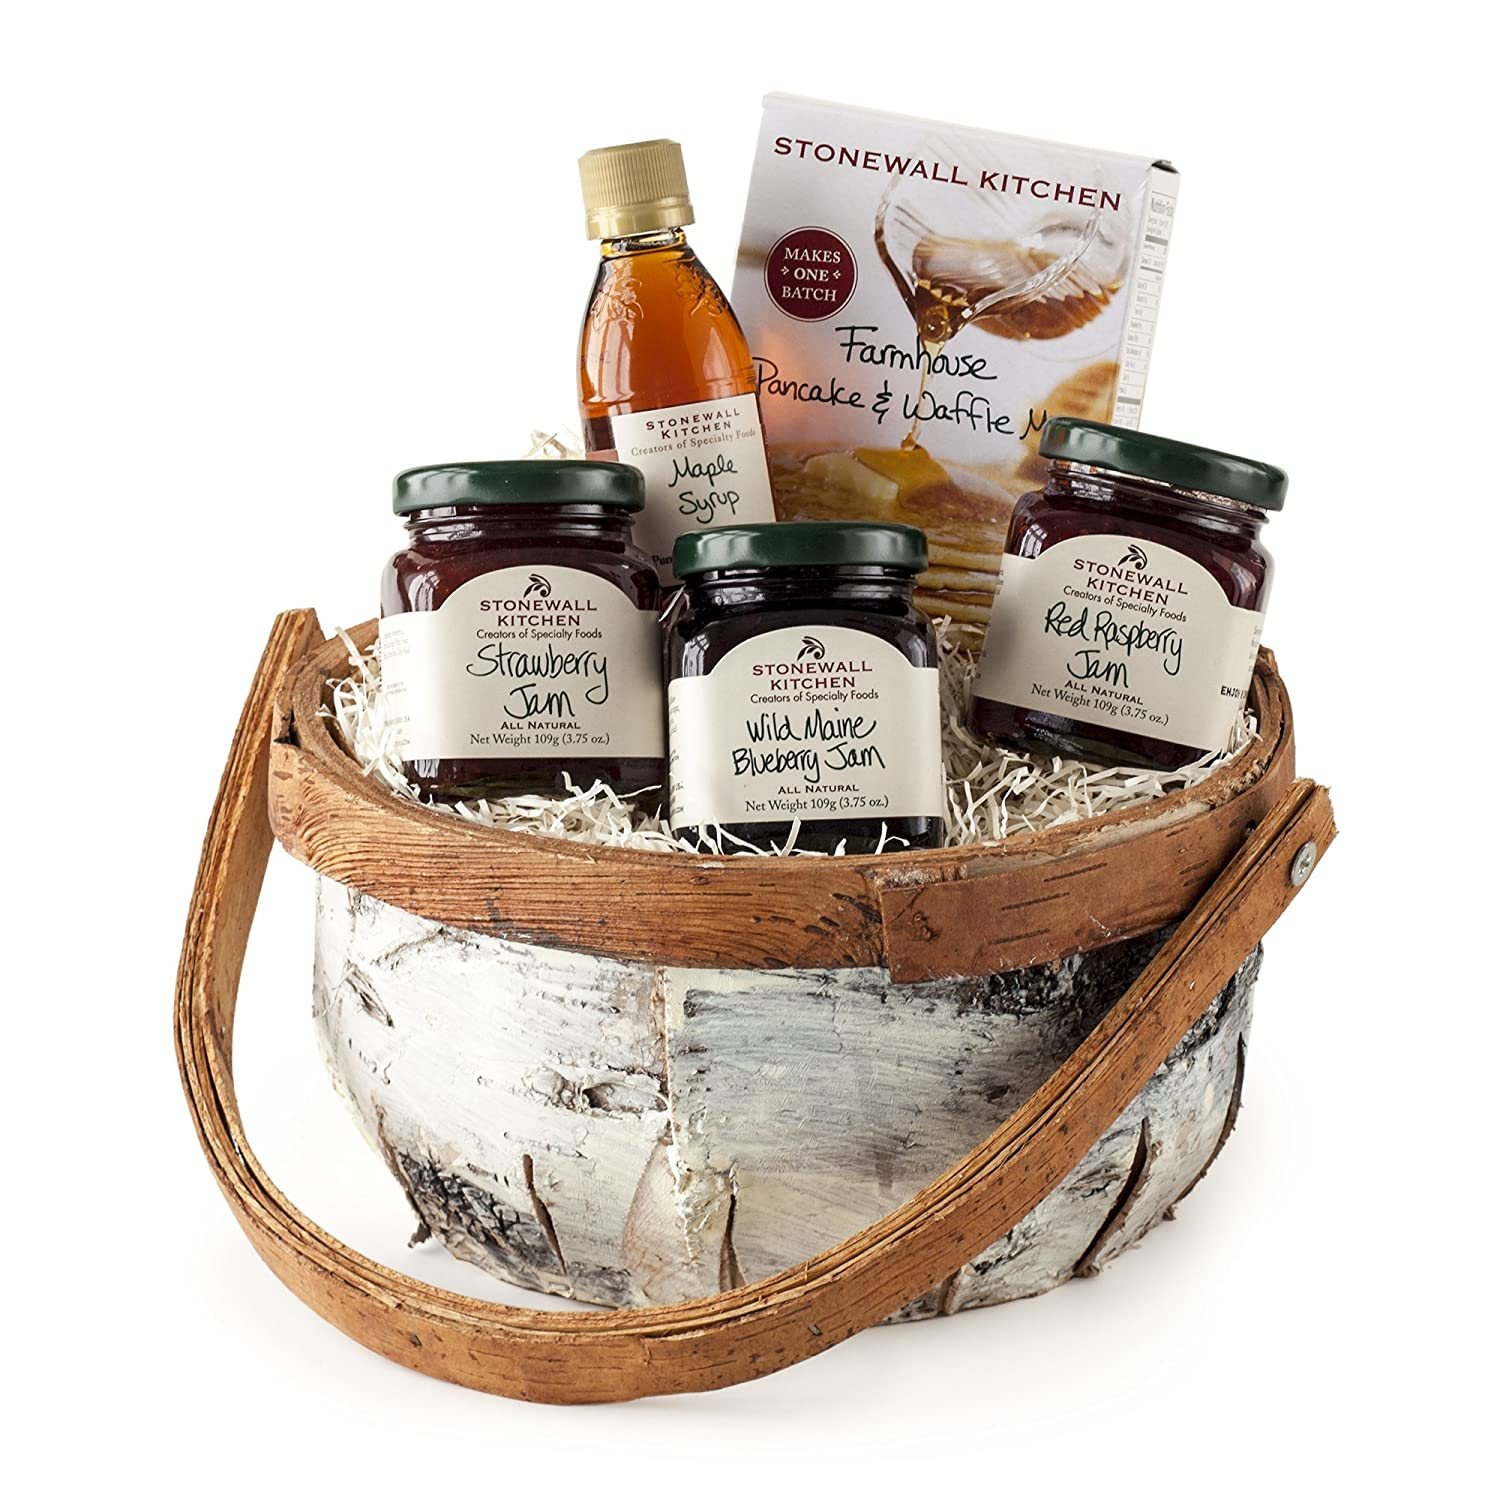 Kitchen Gift Basket Collection Gift Basket For Family With Children Pictures Kcraft